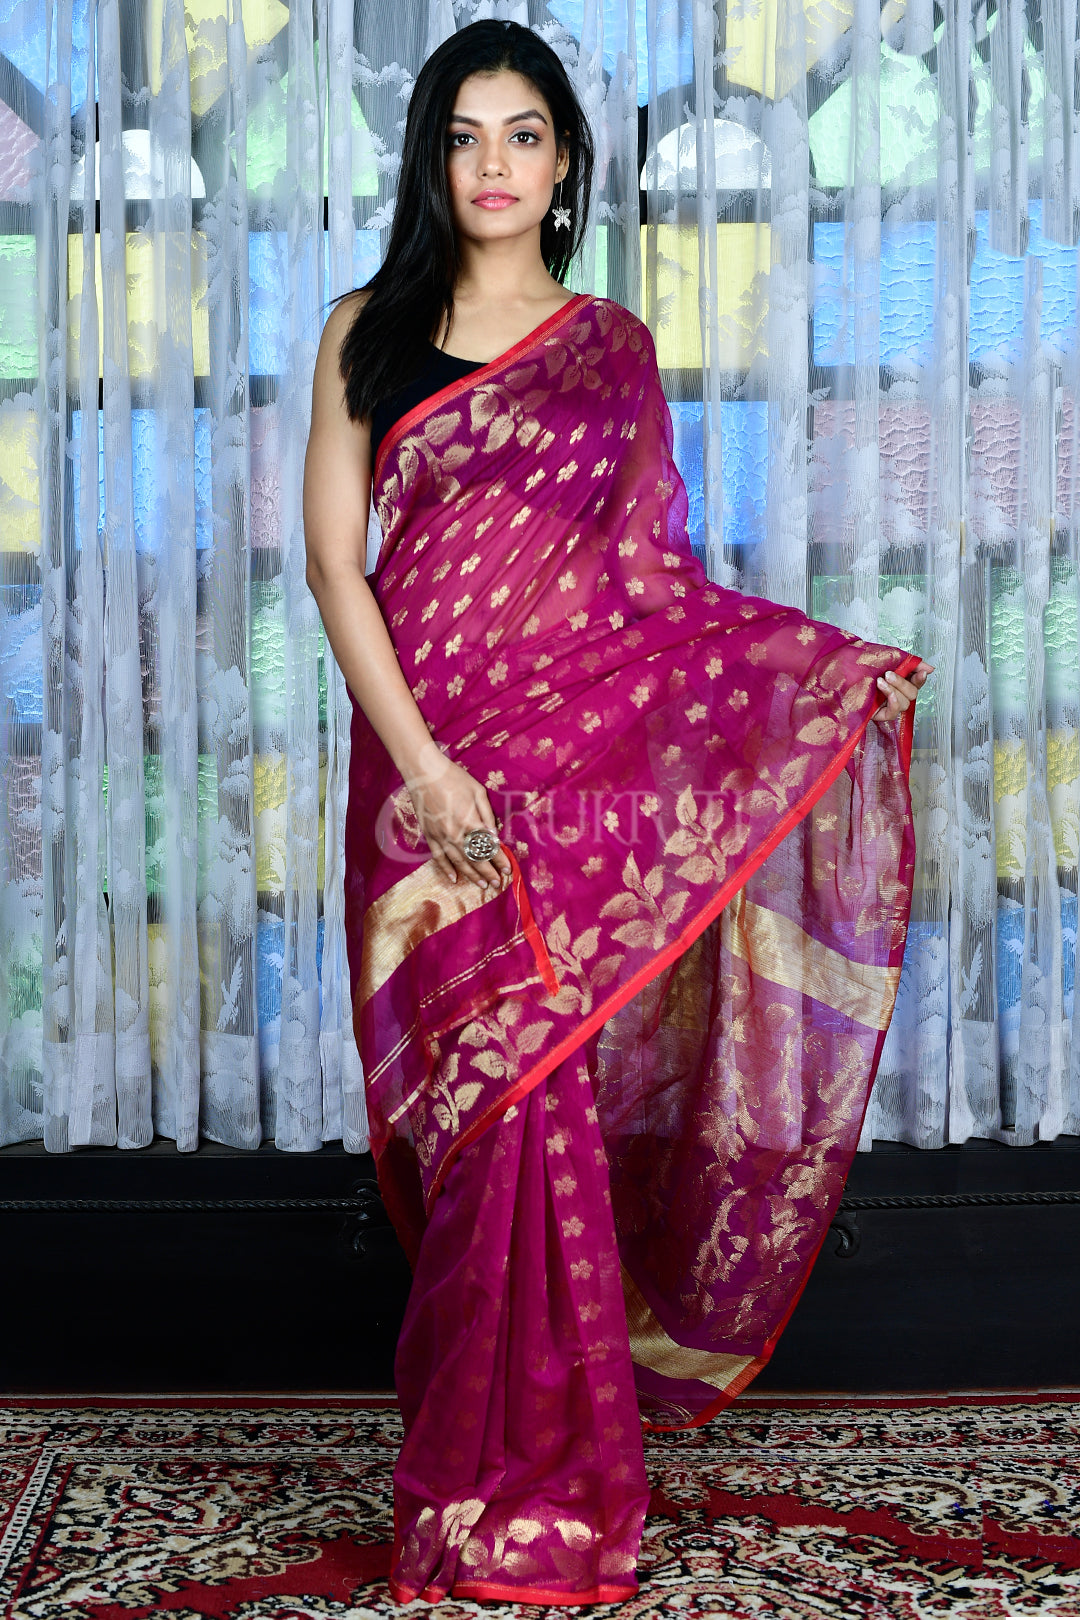 Purple Jamdani With All Over Zari Work - Charukriti.co.in